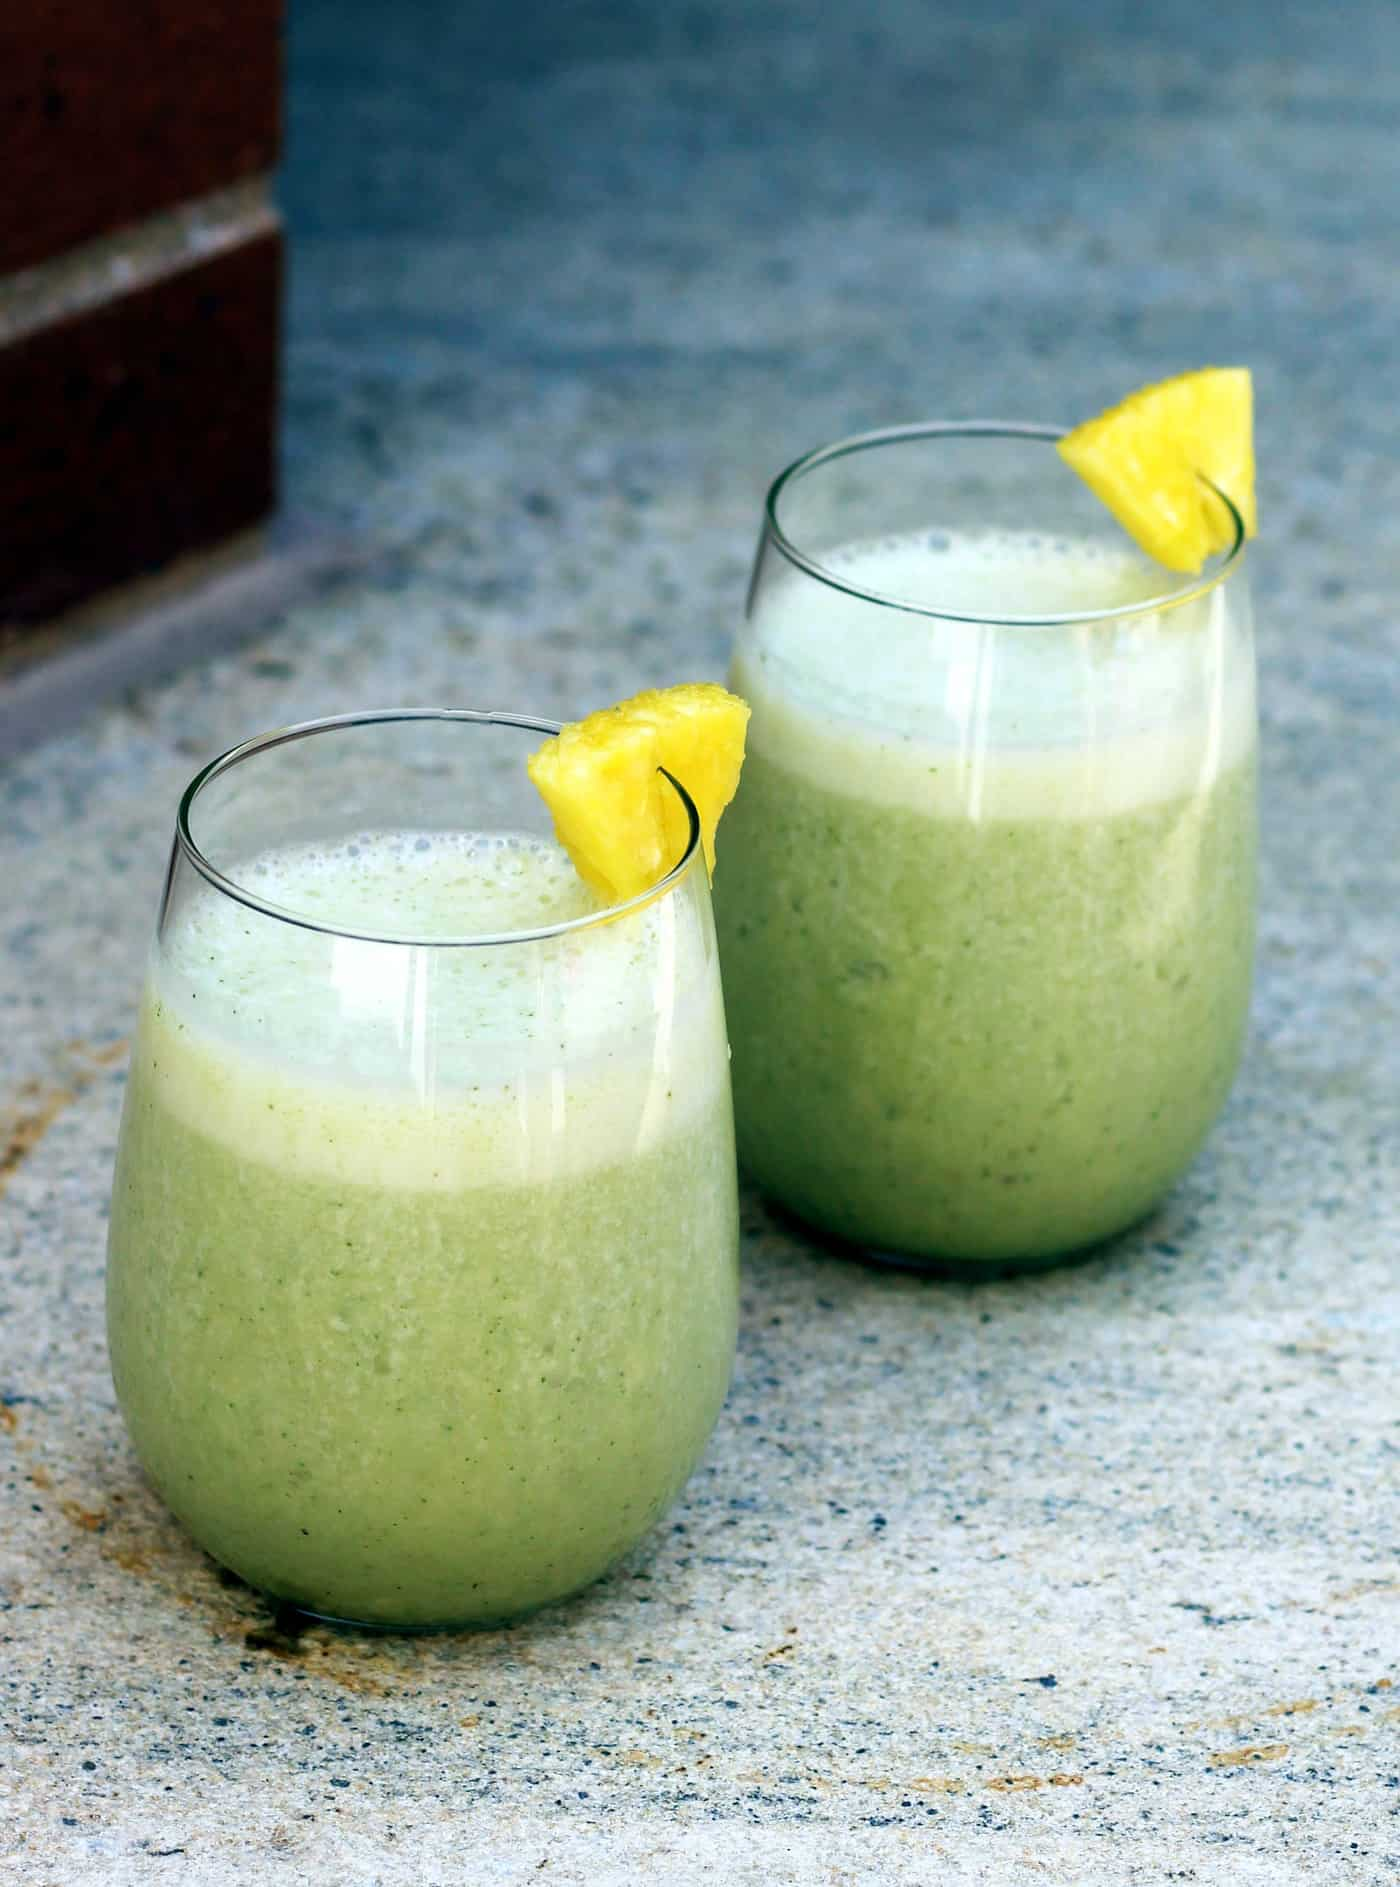 Banana Pineapple Mint Smoothie